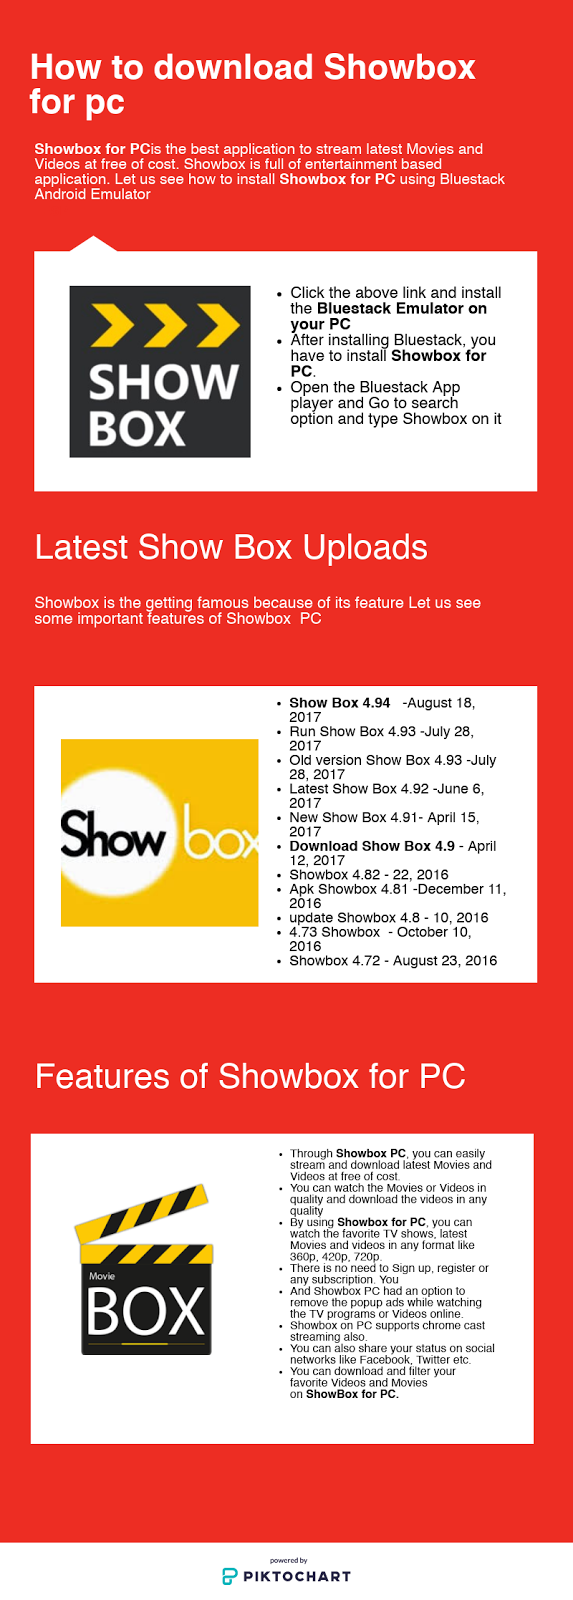 How to Download Showbox for pc